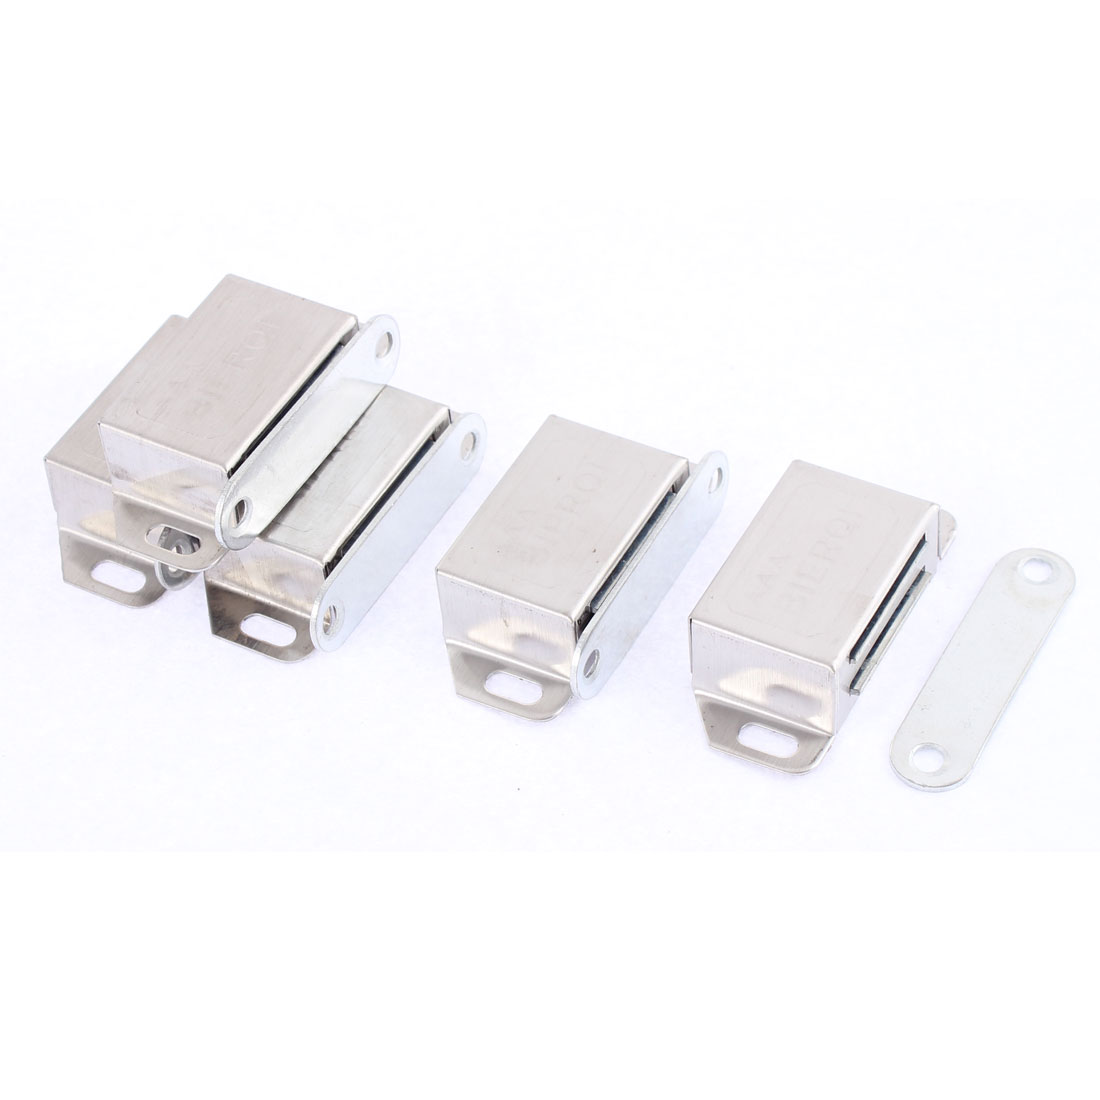 5 Pcs Stainless Steel Cupboard Cabinet Furniture Magnetic Catch Door Latch